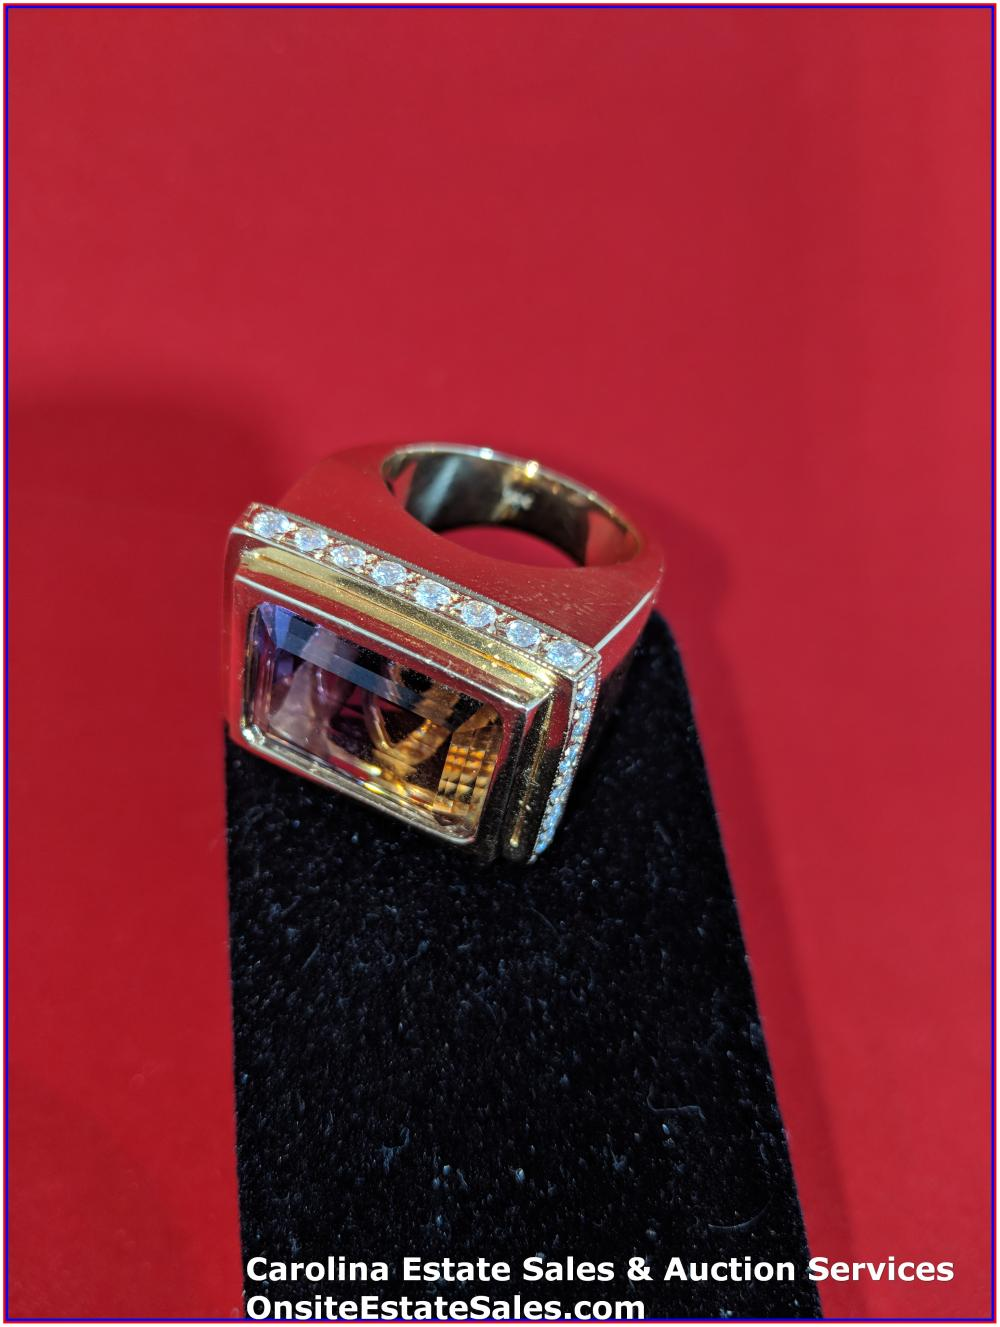 18K Gem Ring Gold 41 Grams Total Weight; 25 ct Emerald Cut Ametrine with 1.5 ct Diamonds